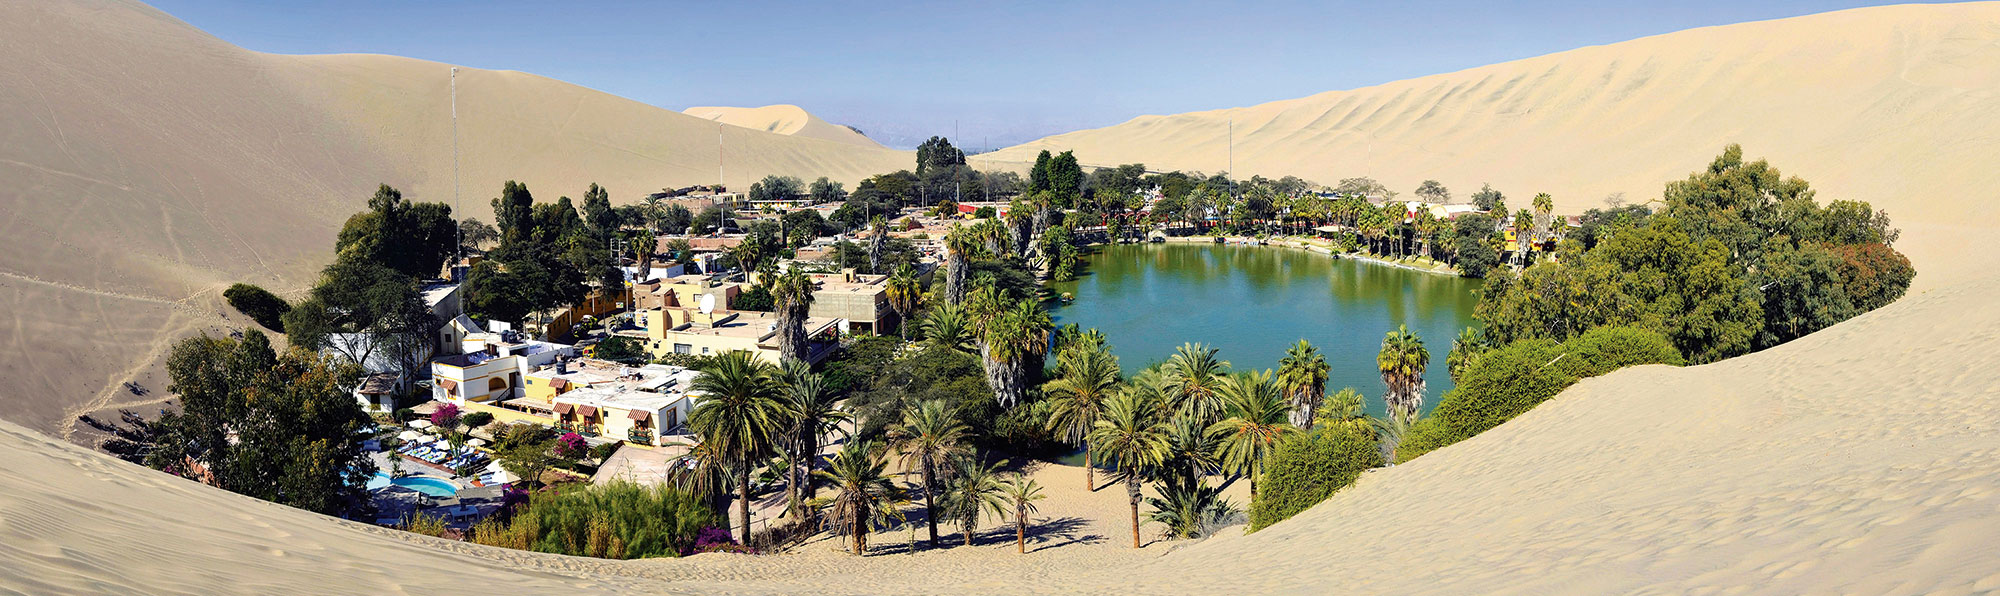 Huacachina